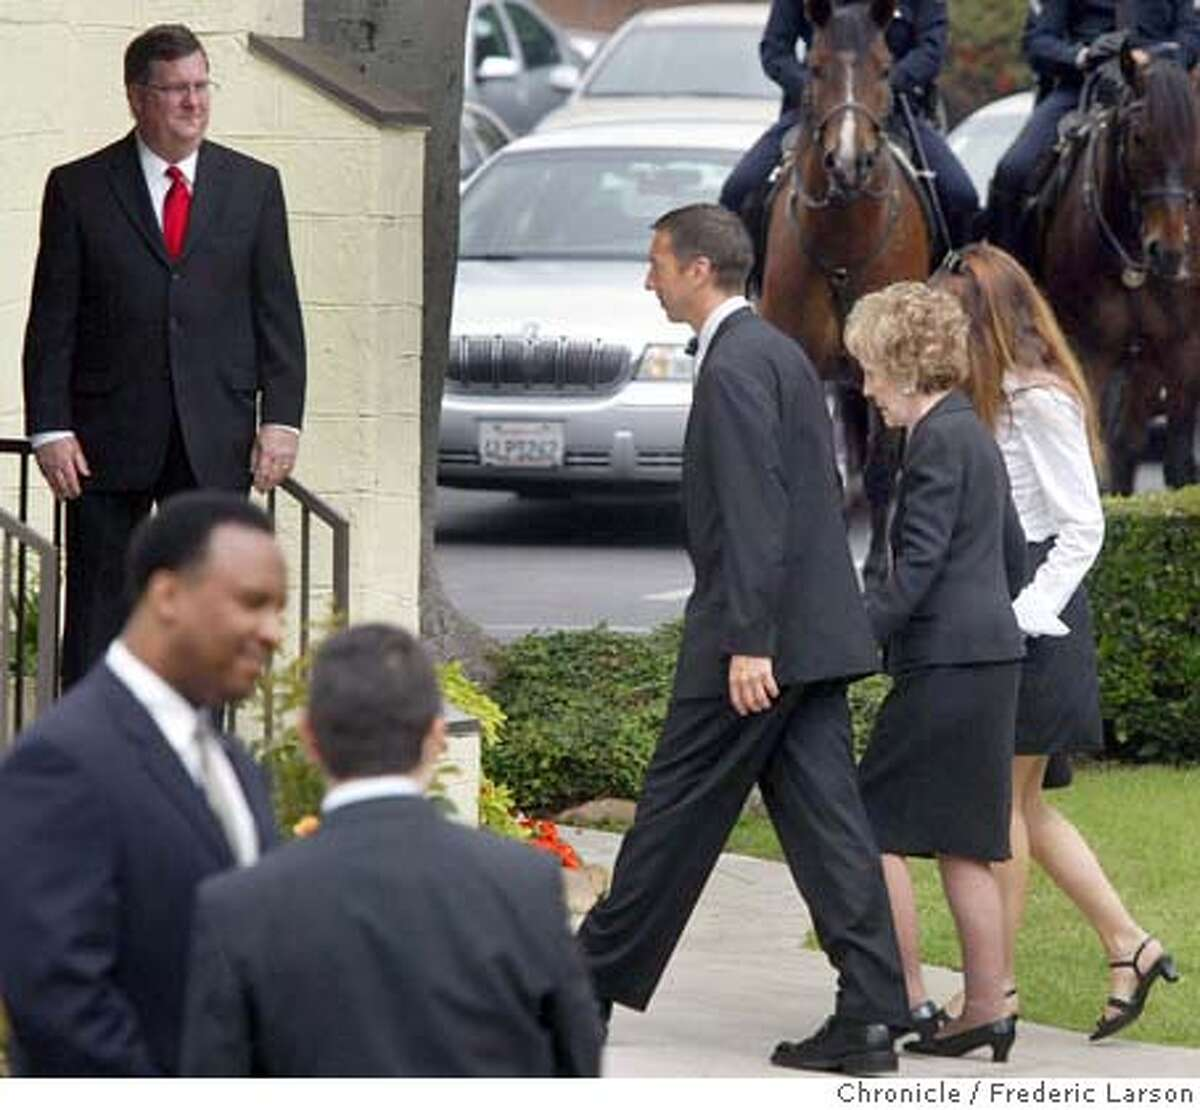 ; Bob Boetticher (far left ) a funeral director for 40 years, was the last person to see the nation's 40th president. Boetticher waits the Reagan family to enter the Gates Kingsley Gate Mortuary where he prepared President Regan for burial. He called the funeral an honor and the pinnacle of his career. 6/7/04 San Francisco Chronicle Frederic Larson